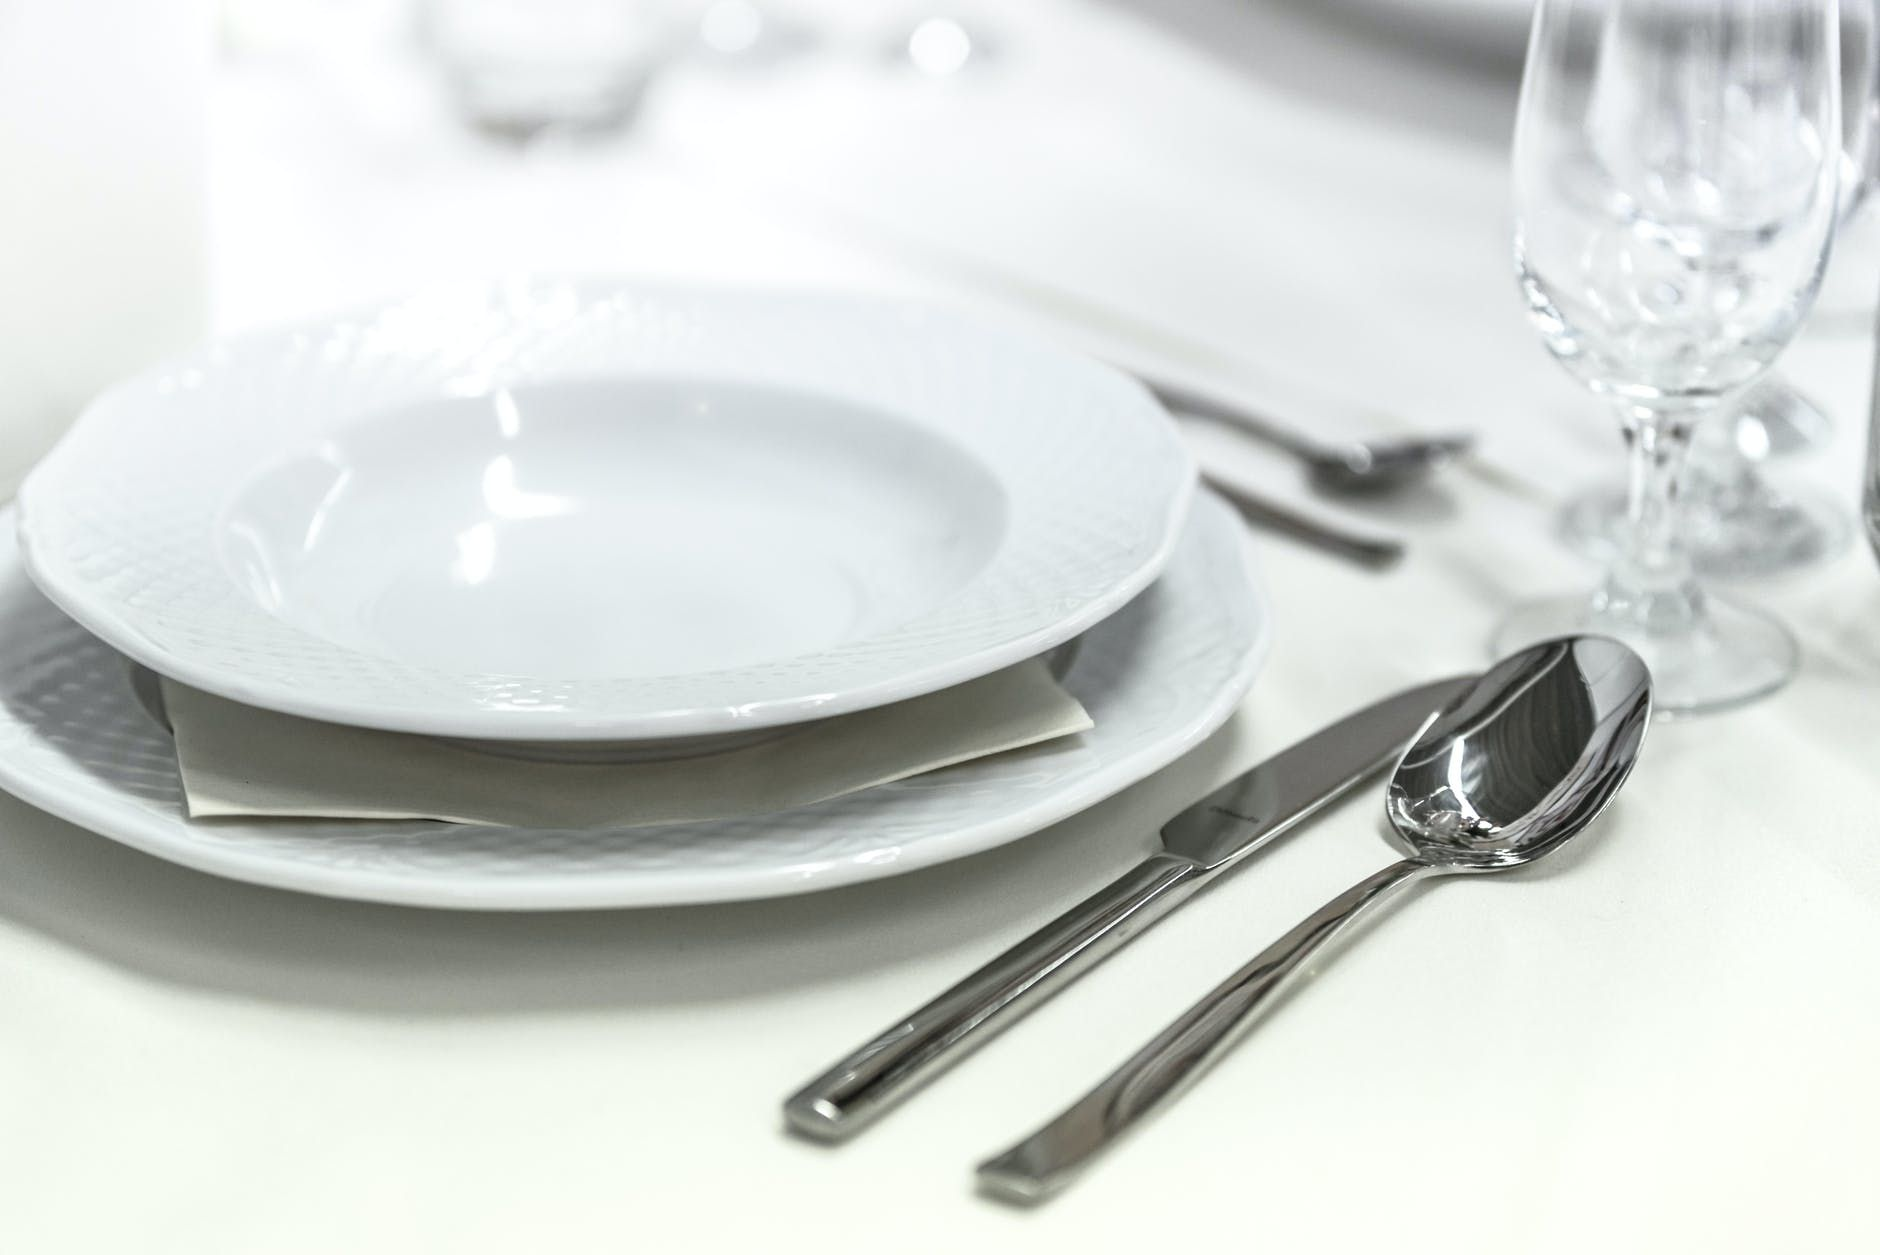 A white plate and cutlery on a table